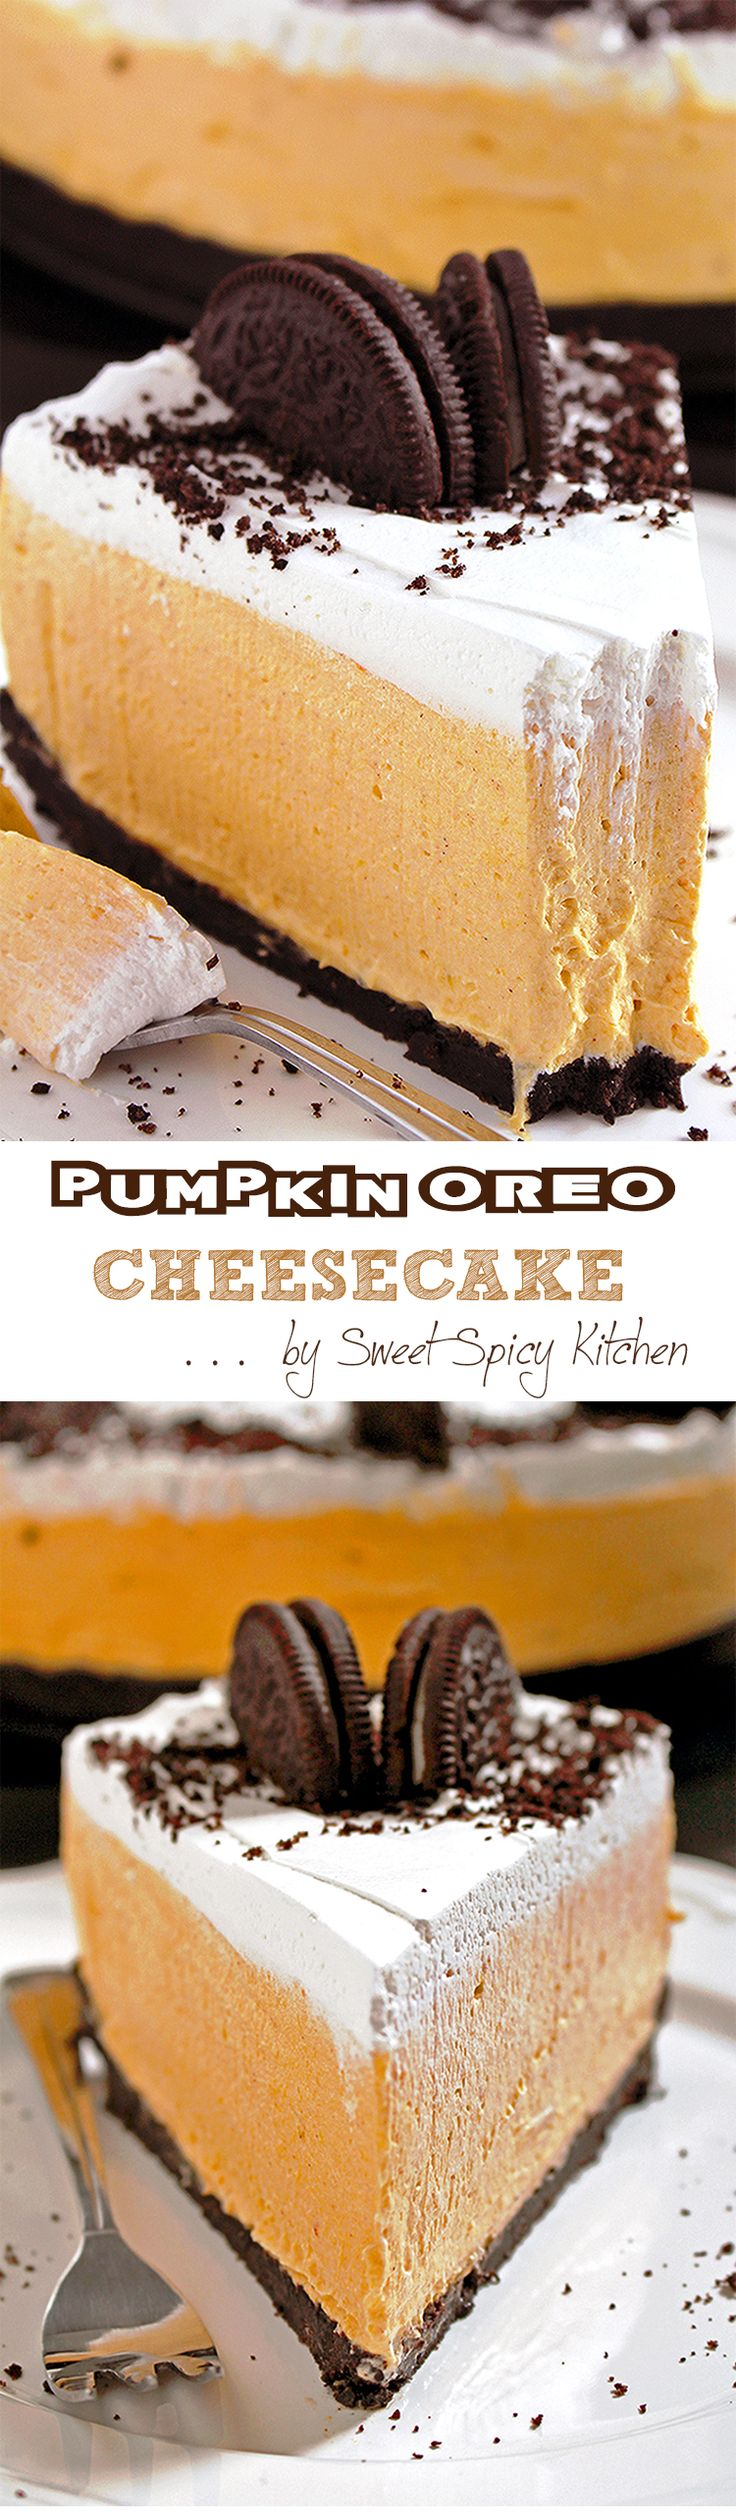 I made another special dessert for pumpkin lovers. After Pumpkin Sweet Spicy Buckeyes Pumpkin Chocolate Cups I present you No Bake Pumpkin Oreo Cheesecake. No Bake Pumpkin Oreo Cheesecake It is a great way to enrich your Thanksgiving dinner, which is planned for days, with patience and care. We try to make it as...Read More »